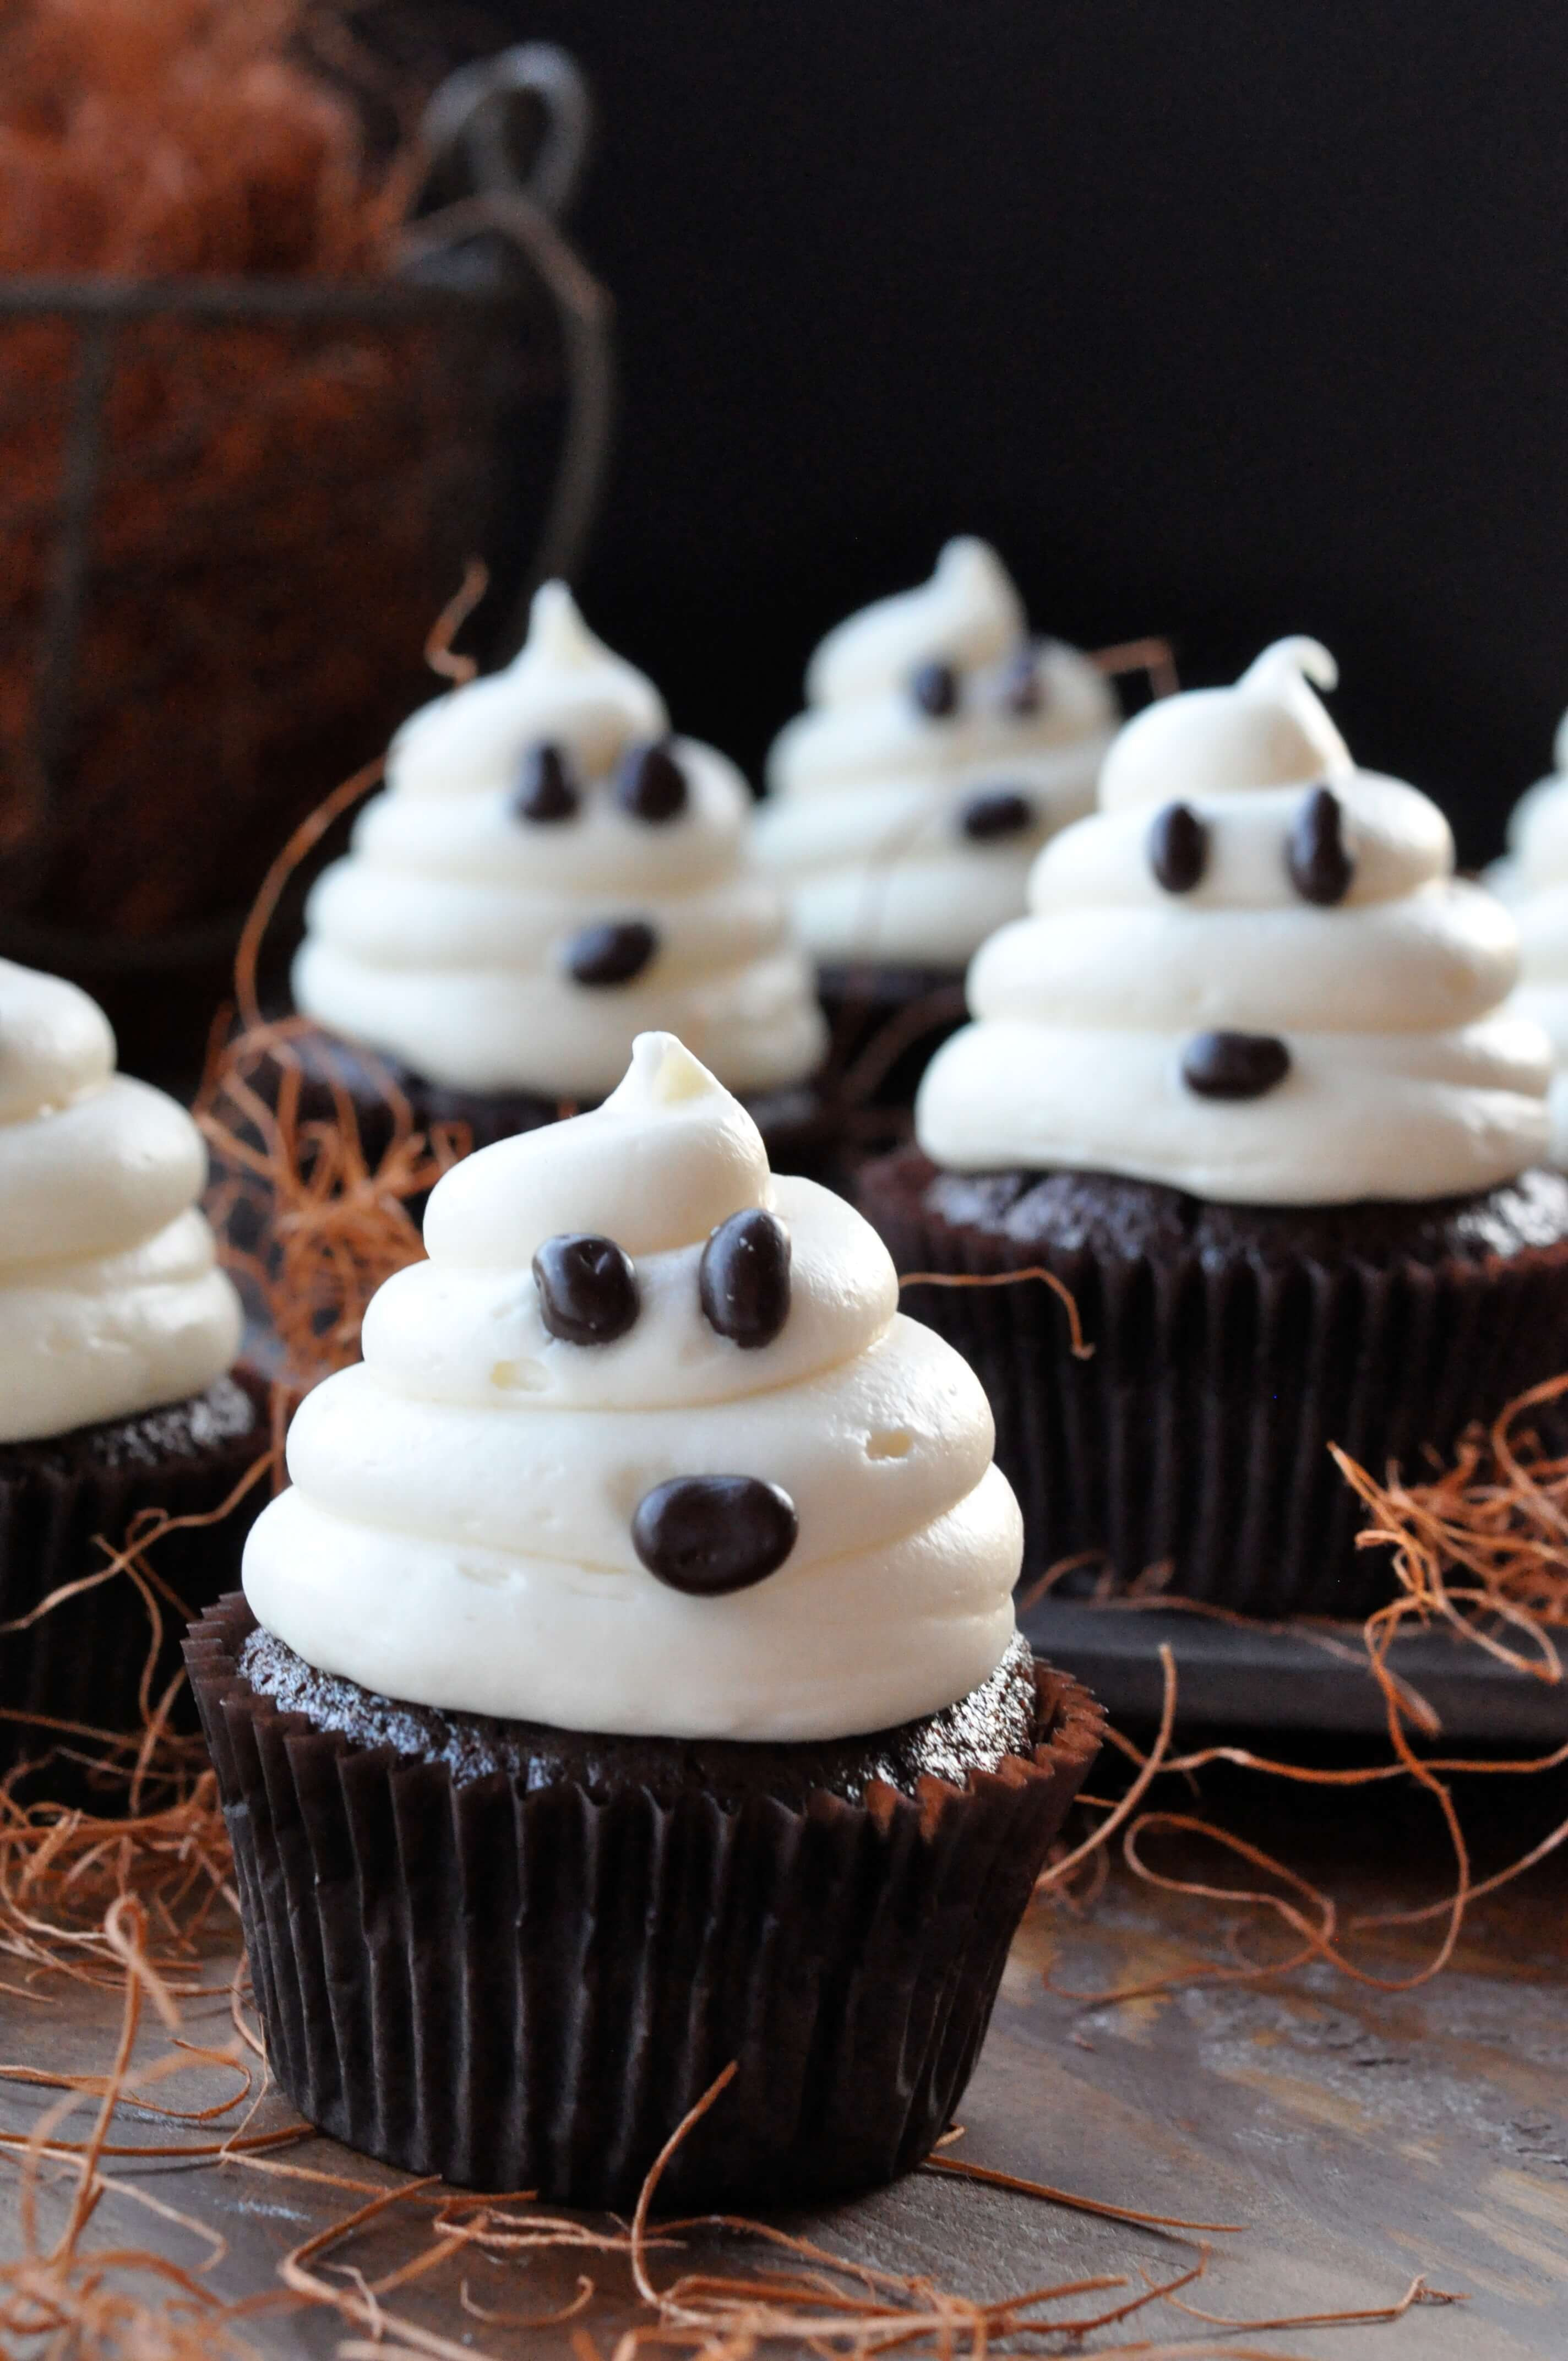 Homemade Halloween Cakes  Halloween Ghosts on Carrot Cake Recipe—Fast and Easy